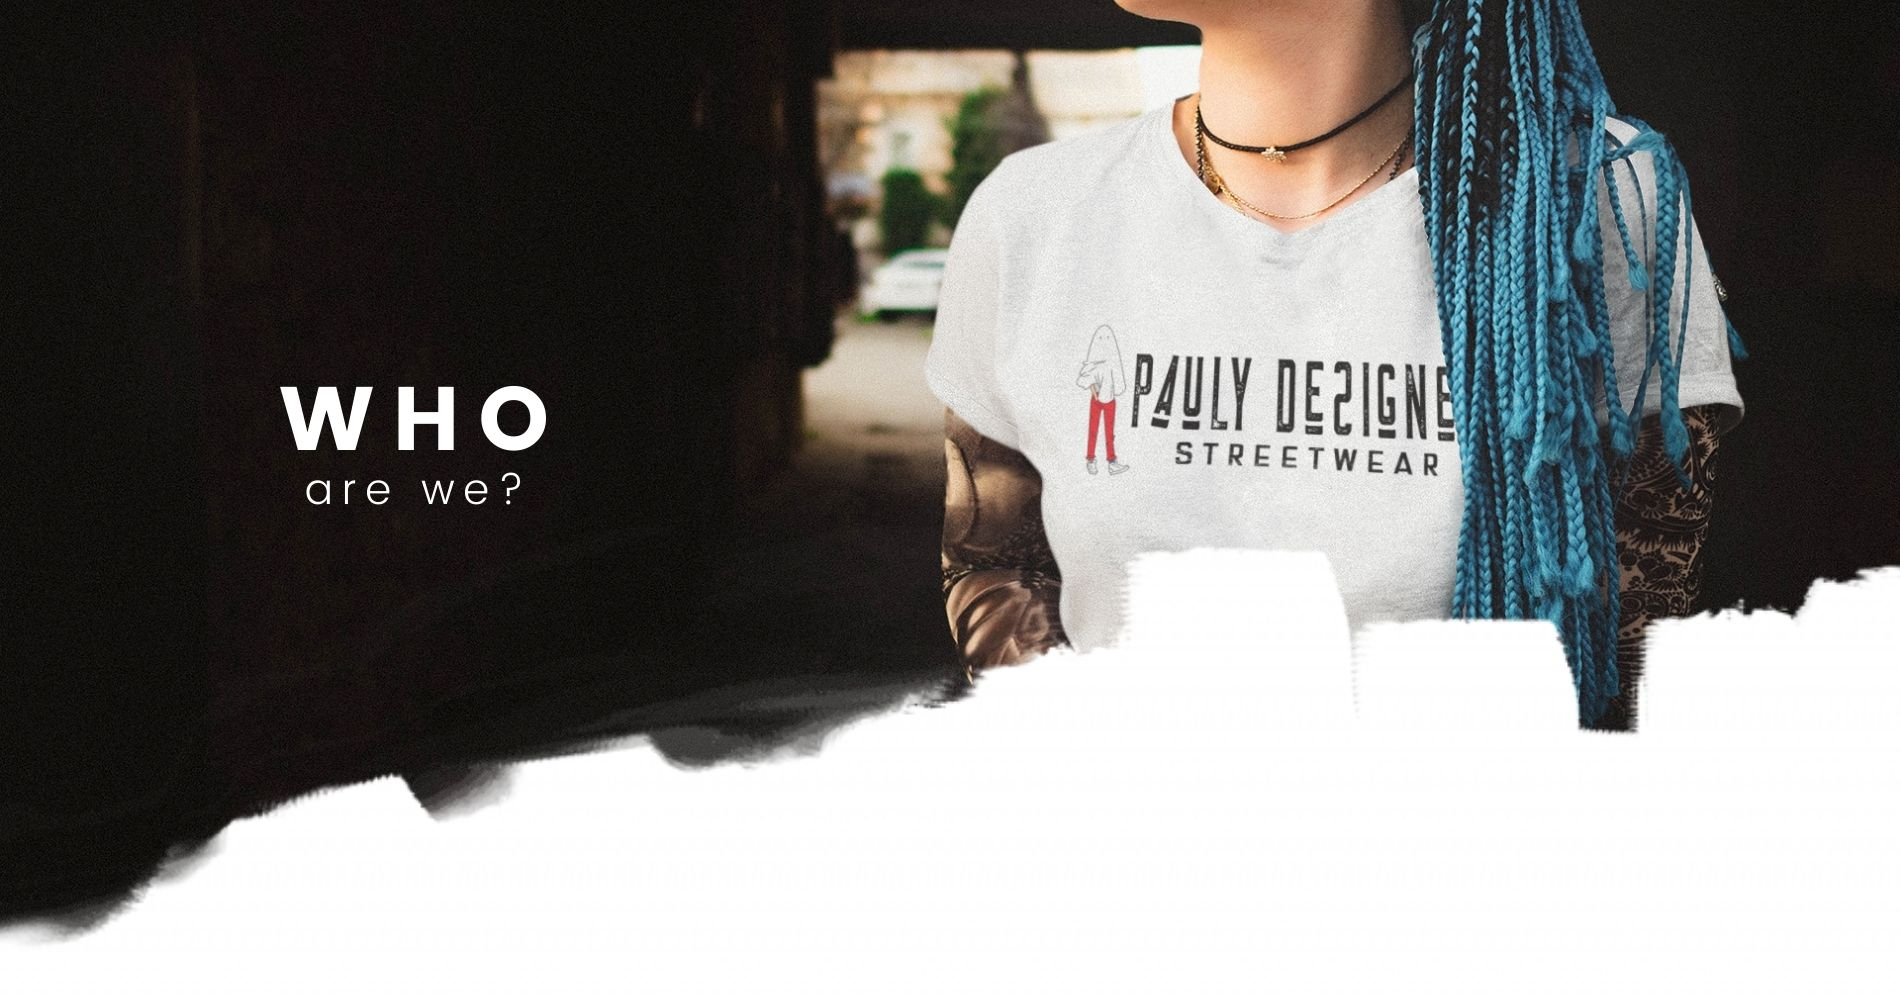 About Pauly Designed